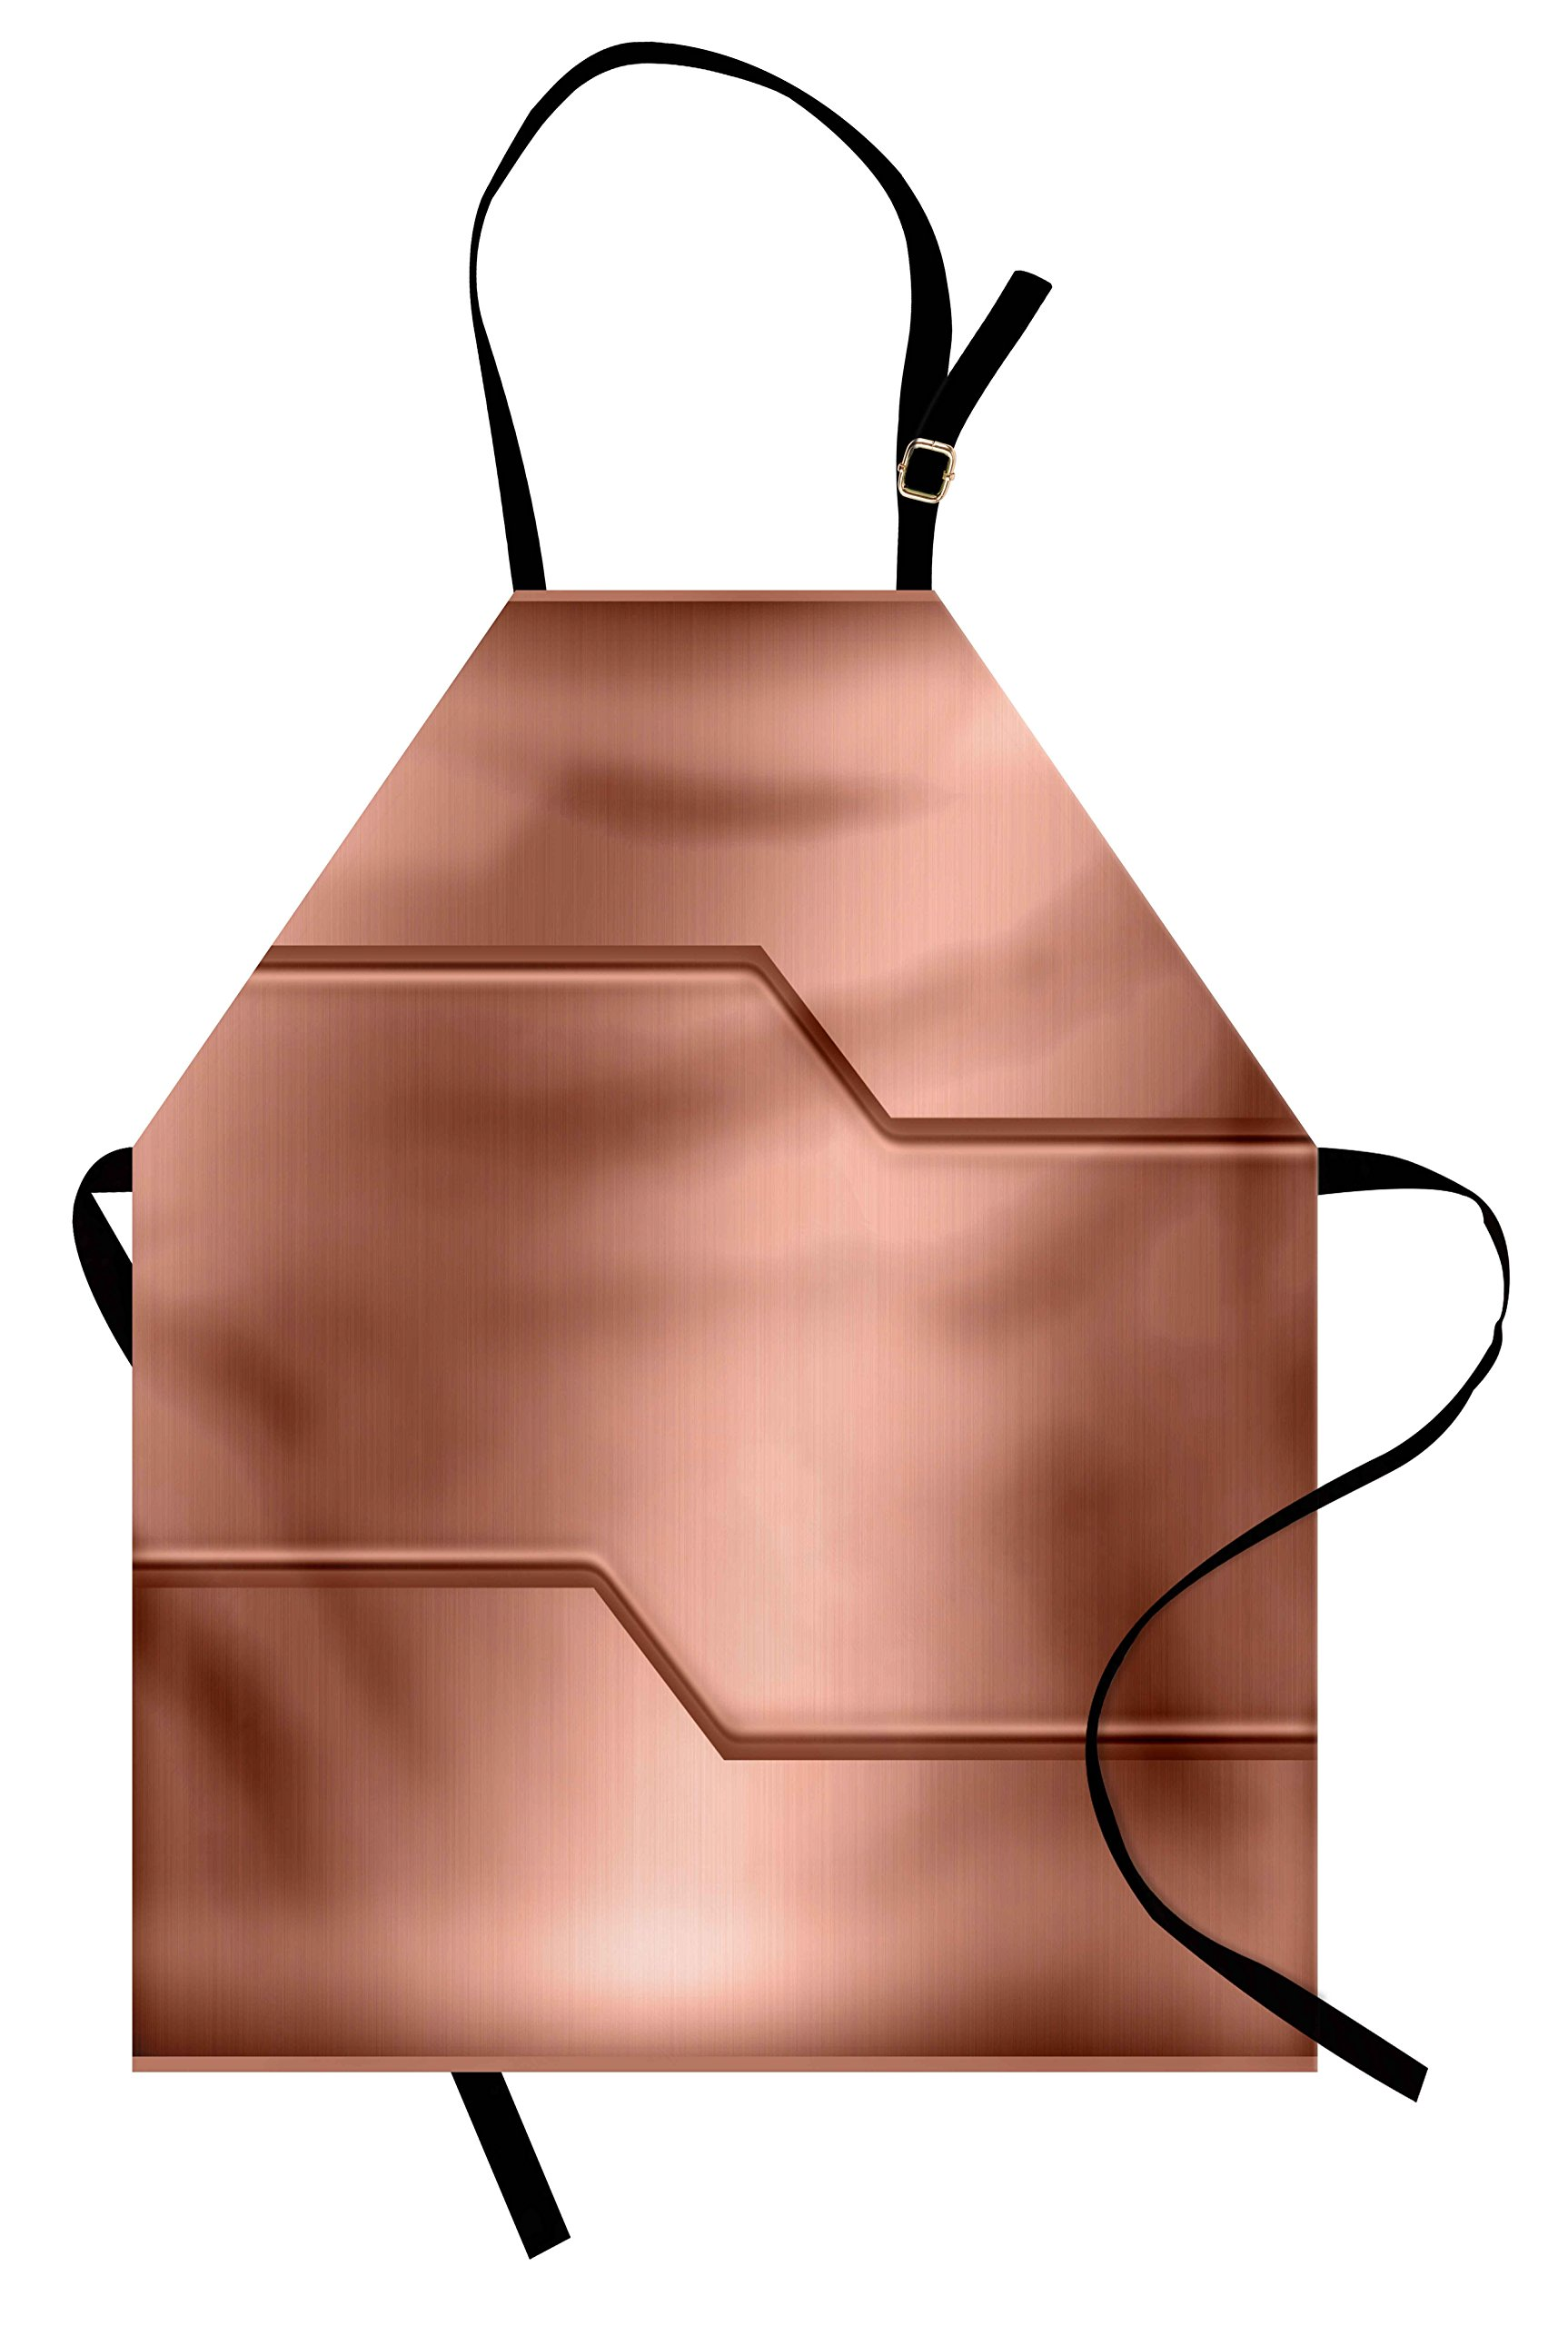 Ambesonne Industrial Apron, Realistic Looking Steel Surface Print Plate Bar Image Technology Inspired Design, Unisex Kitchen Bib Apron with Adjustable Neck for Cooking Baking Gardening, Rose Gold